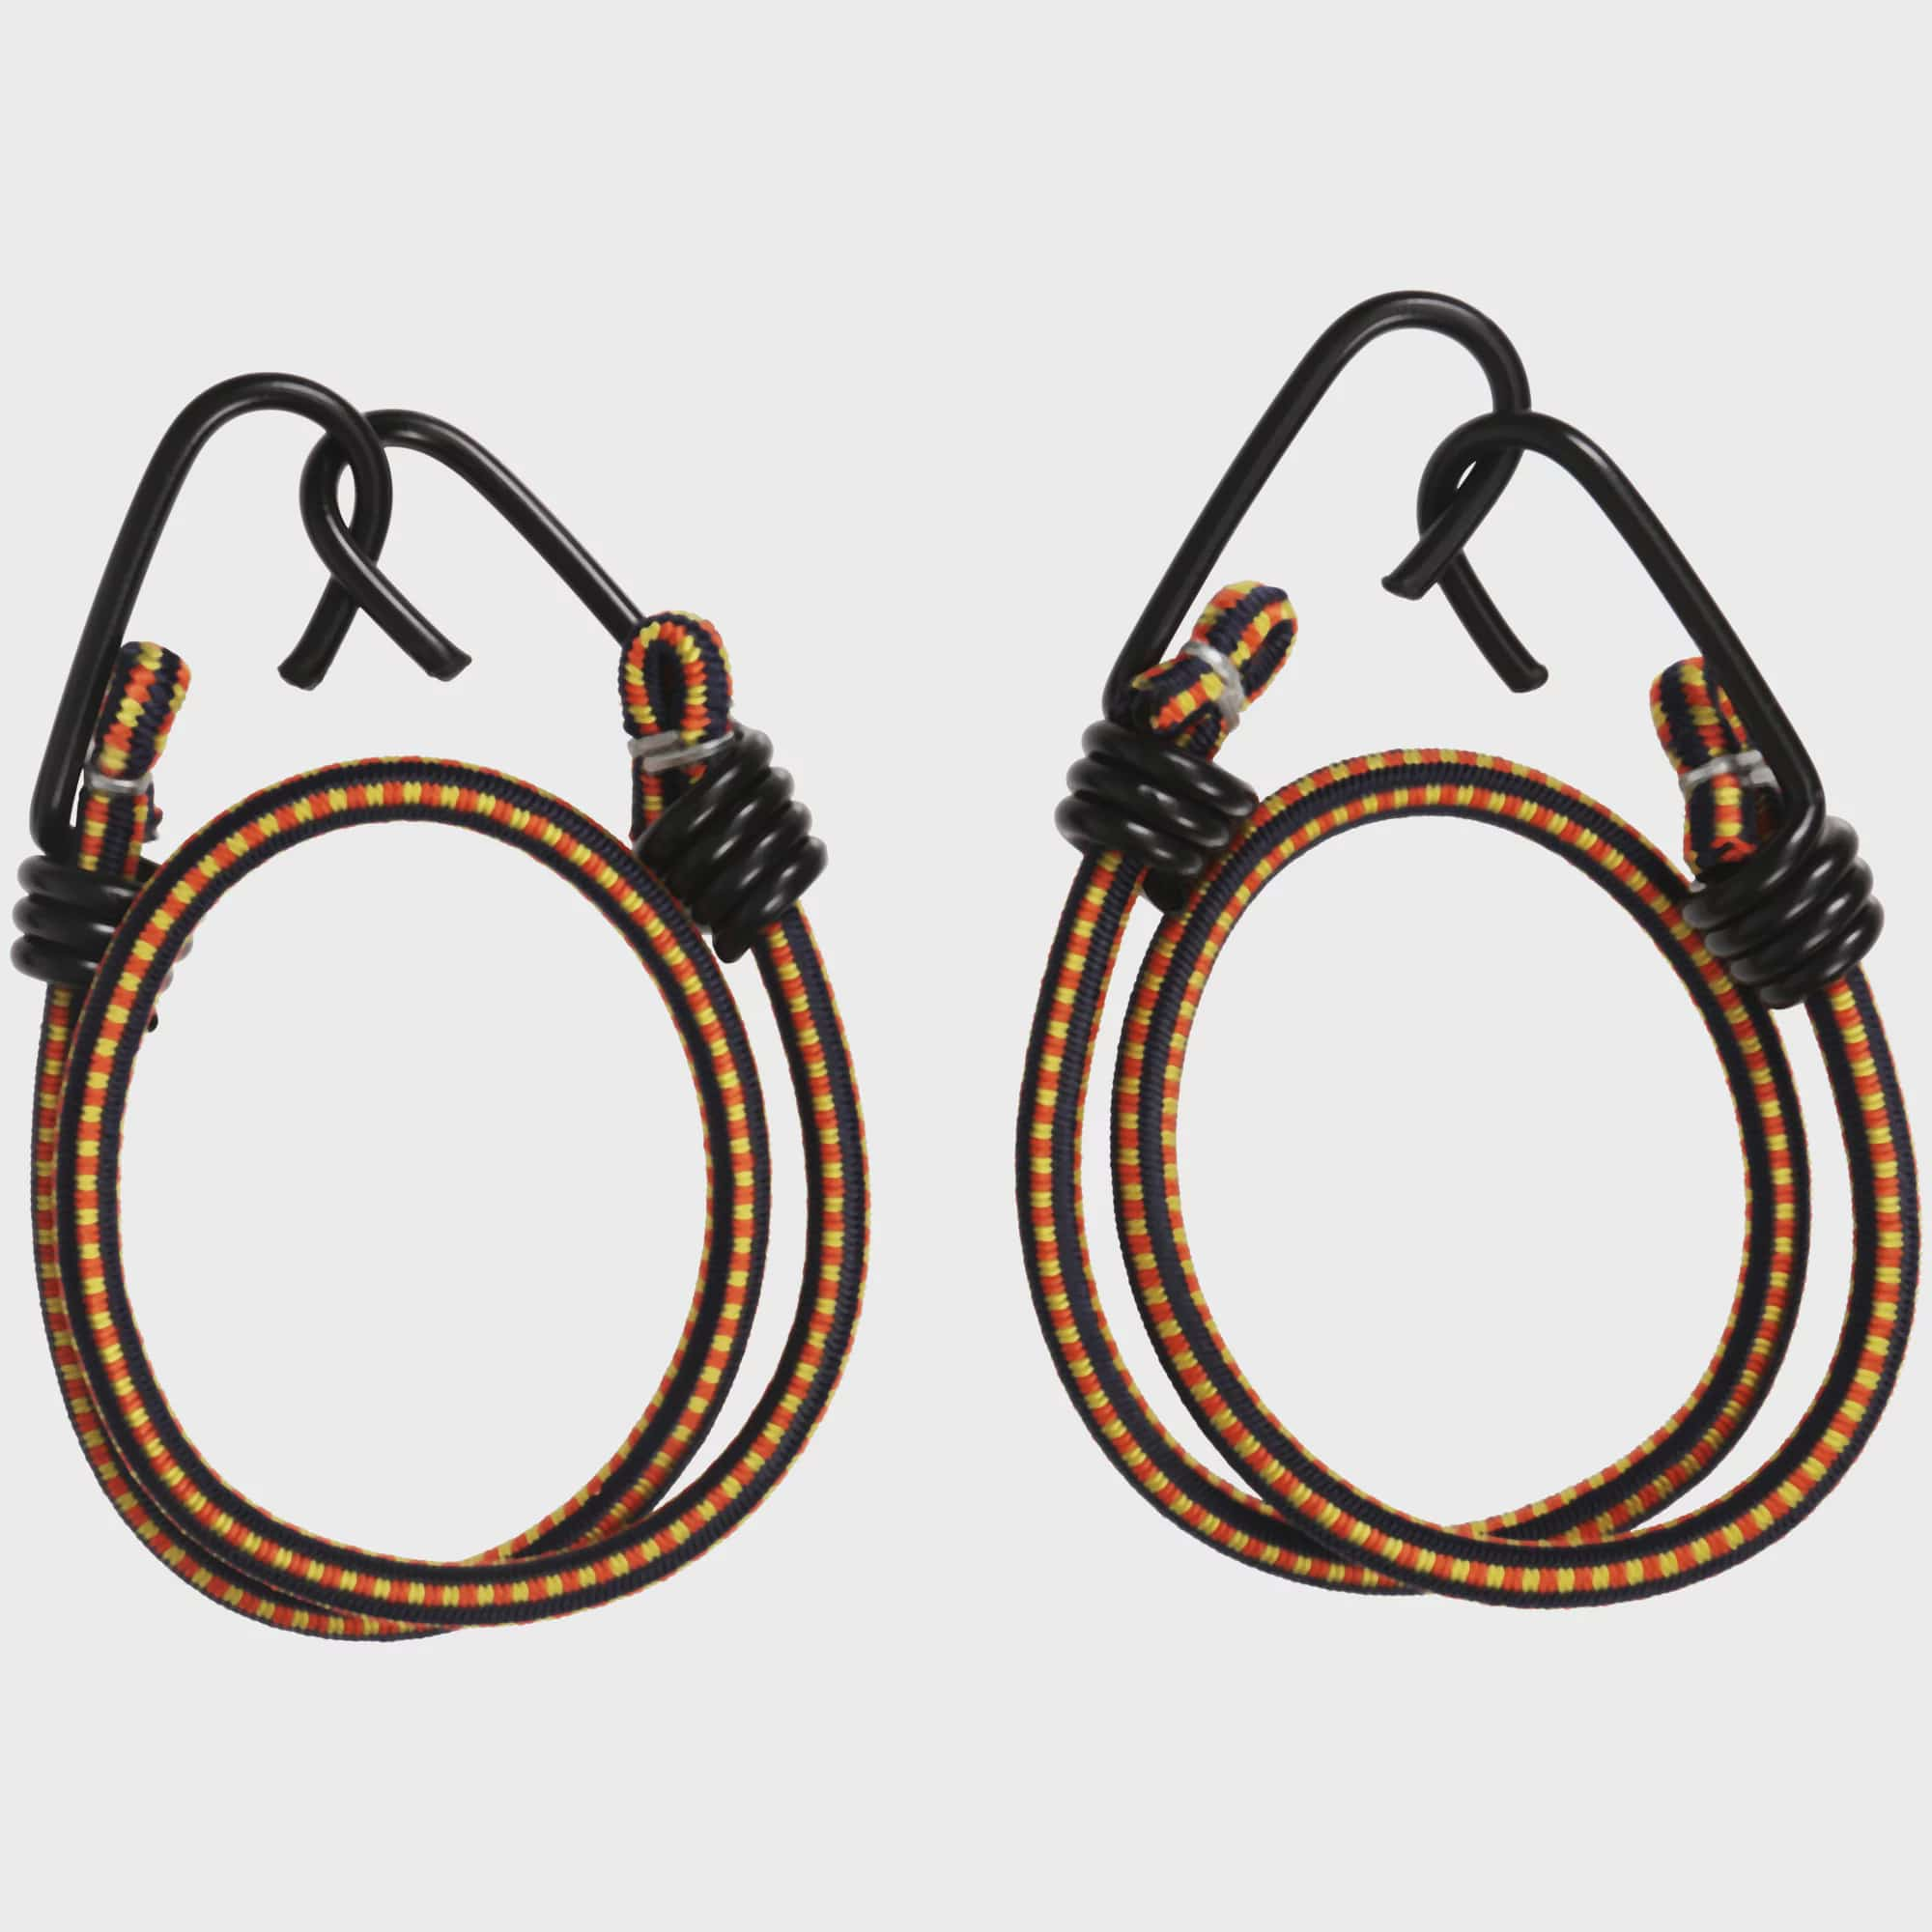 Bungee Cord Action 24 Black Order 10S Only x